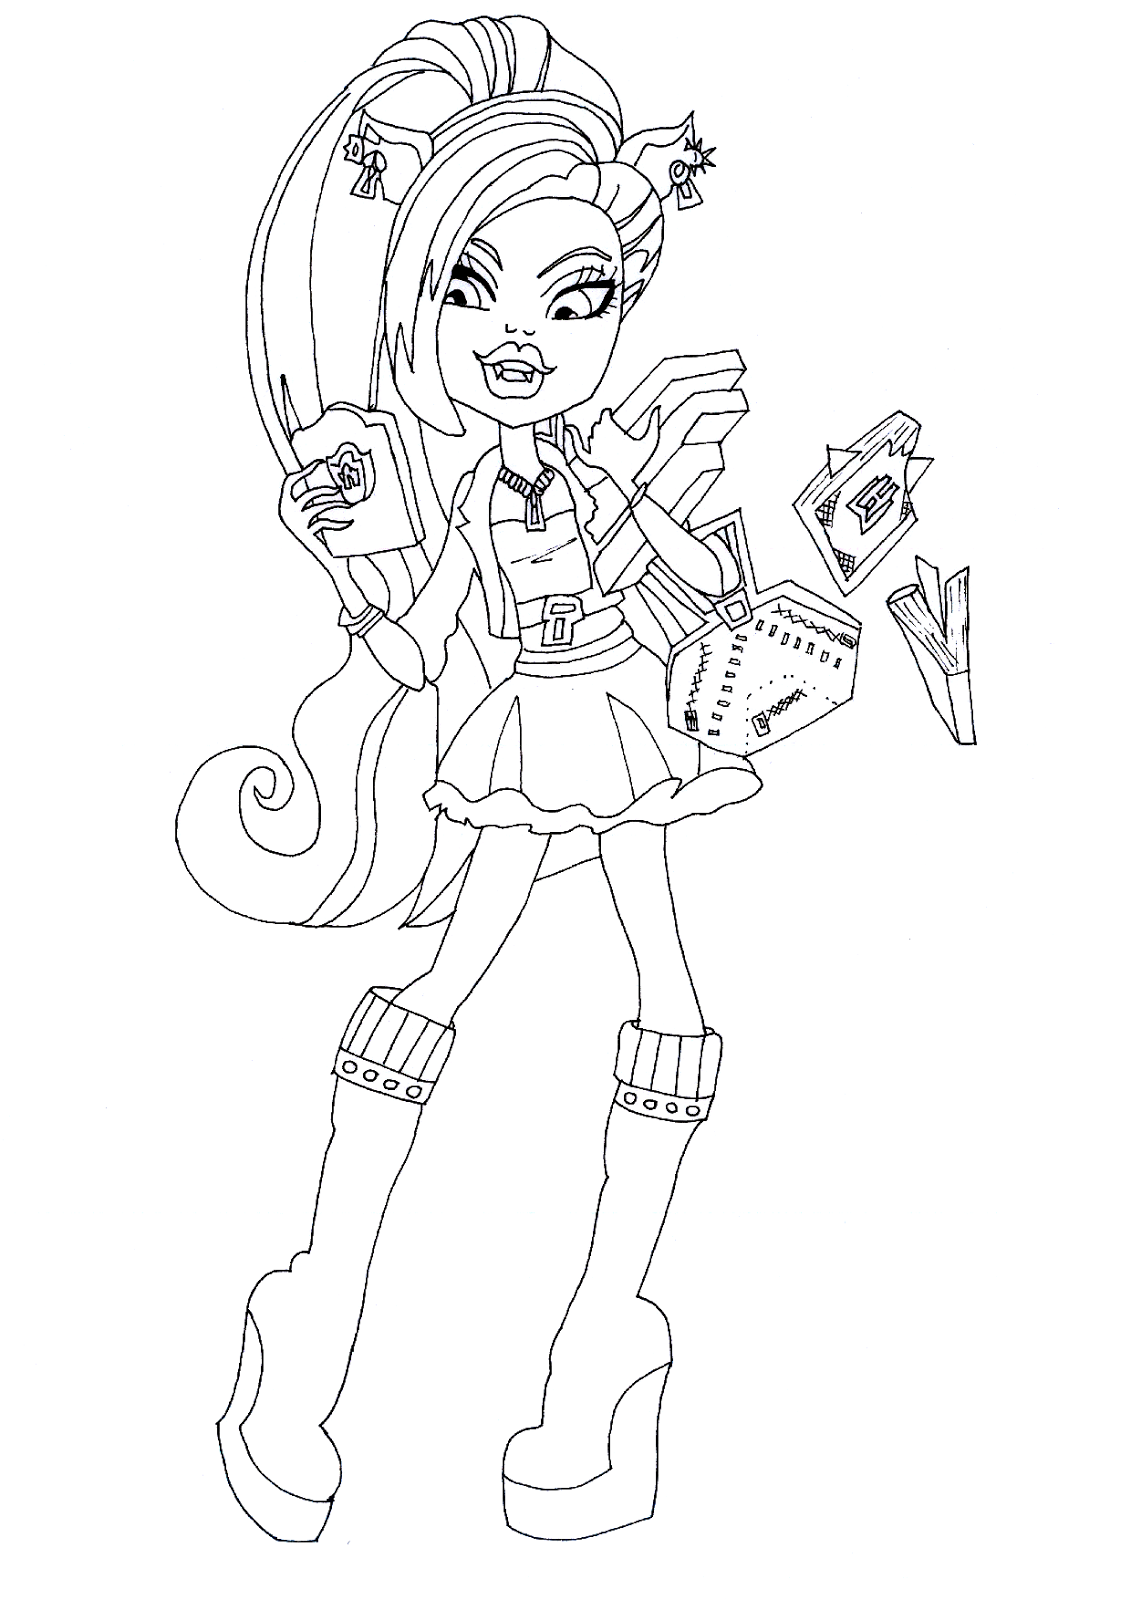 Monster High Draculaura Ausmalbilder : Monster High Clawdeen Wolf Drawing At Getdrawings Com Free For